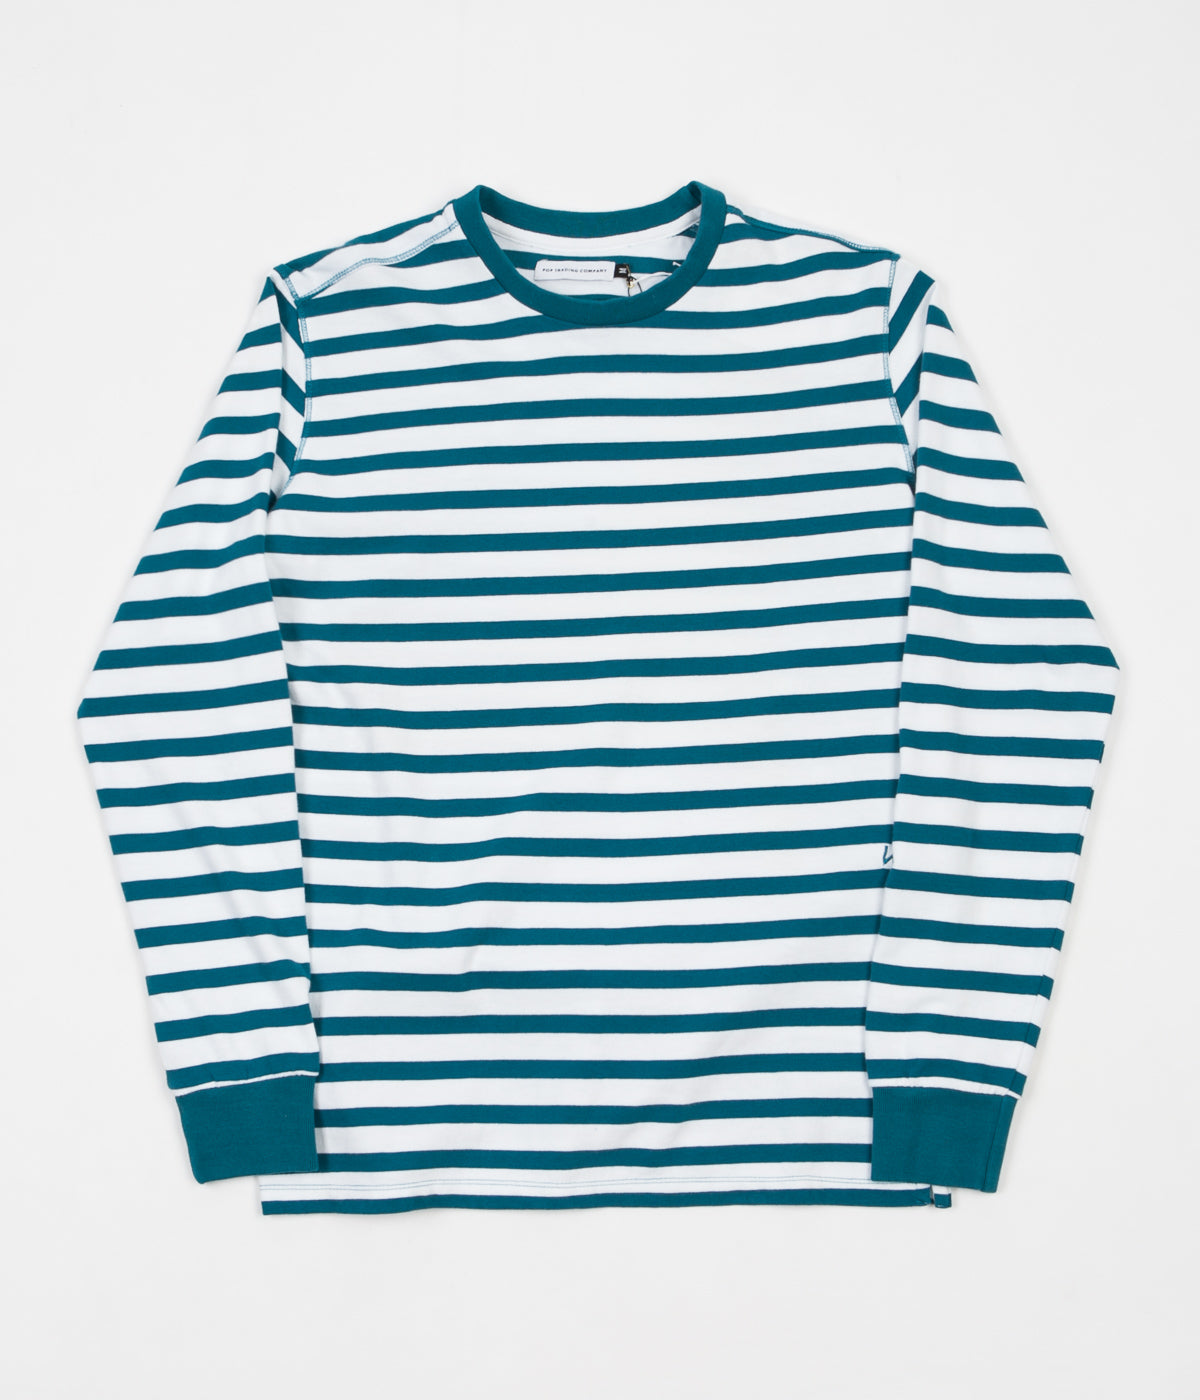 Pop Trading Company x Wayward Wow Long Sleeve T-Shirt - Ocean Green / Off White